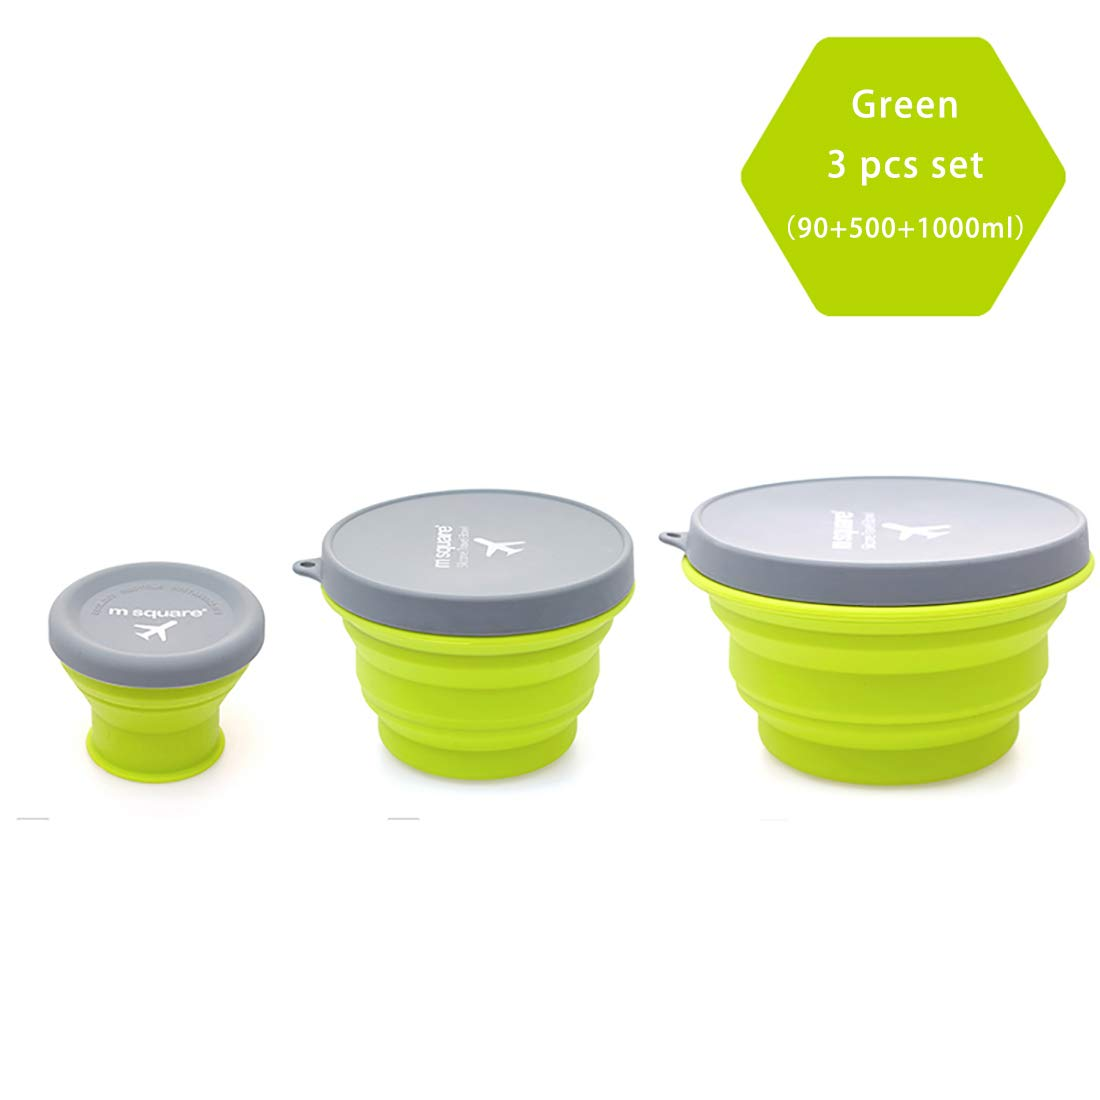 m square Collapsible Food Grade Silicone Bowls with Lids, BPA-free, Camping, Traveling, Pets, Hiking, Backpacking Bowl (3 pcs set Green)